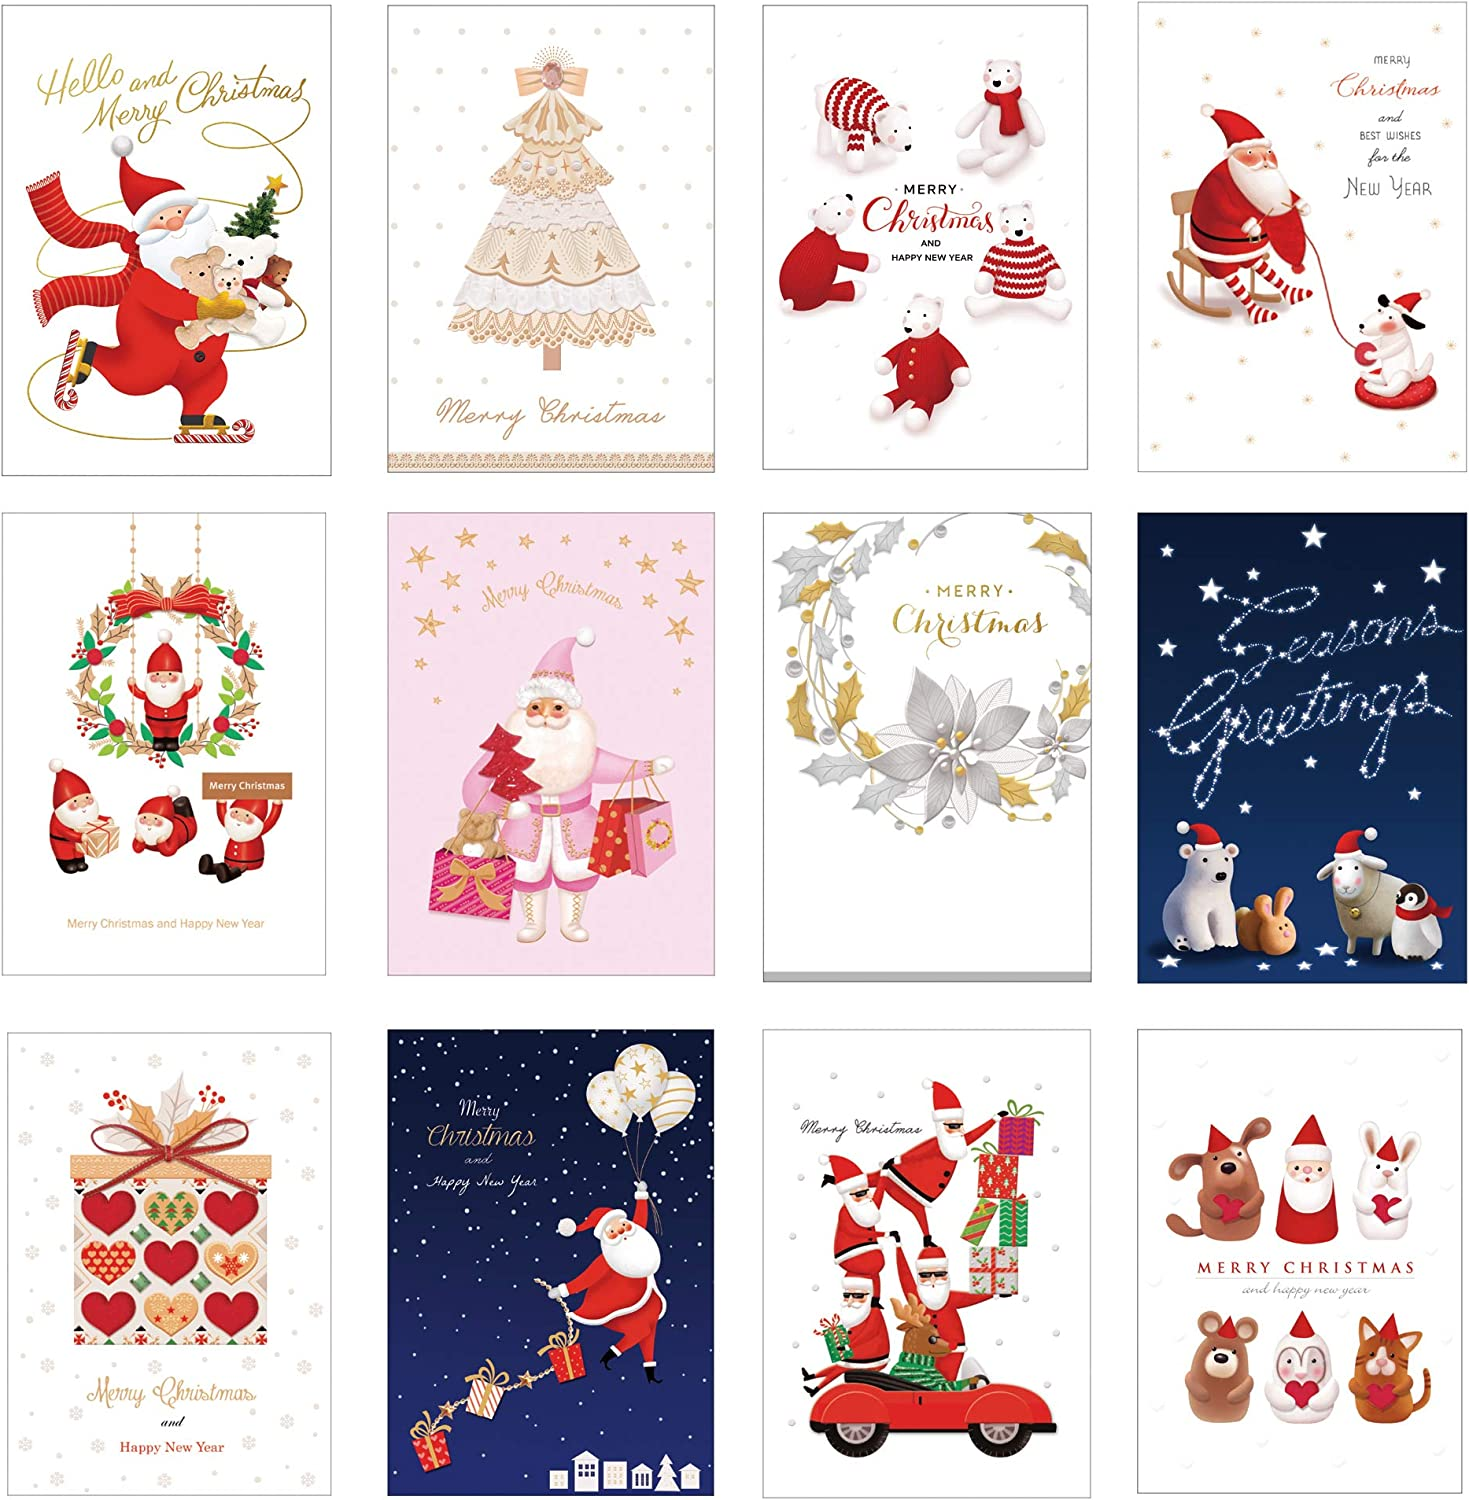 Set of 60 MAUMDAMA Christmas Bulk Postcards - Greeting messages for School, Kids, Business, Office and More - 12 Different Designs, 5 of Each - 4 x 6 Inches - Made in KOREA (Christmas)